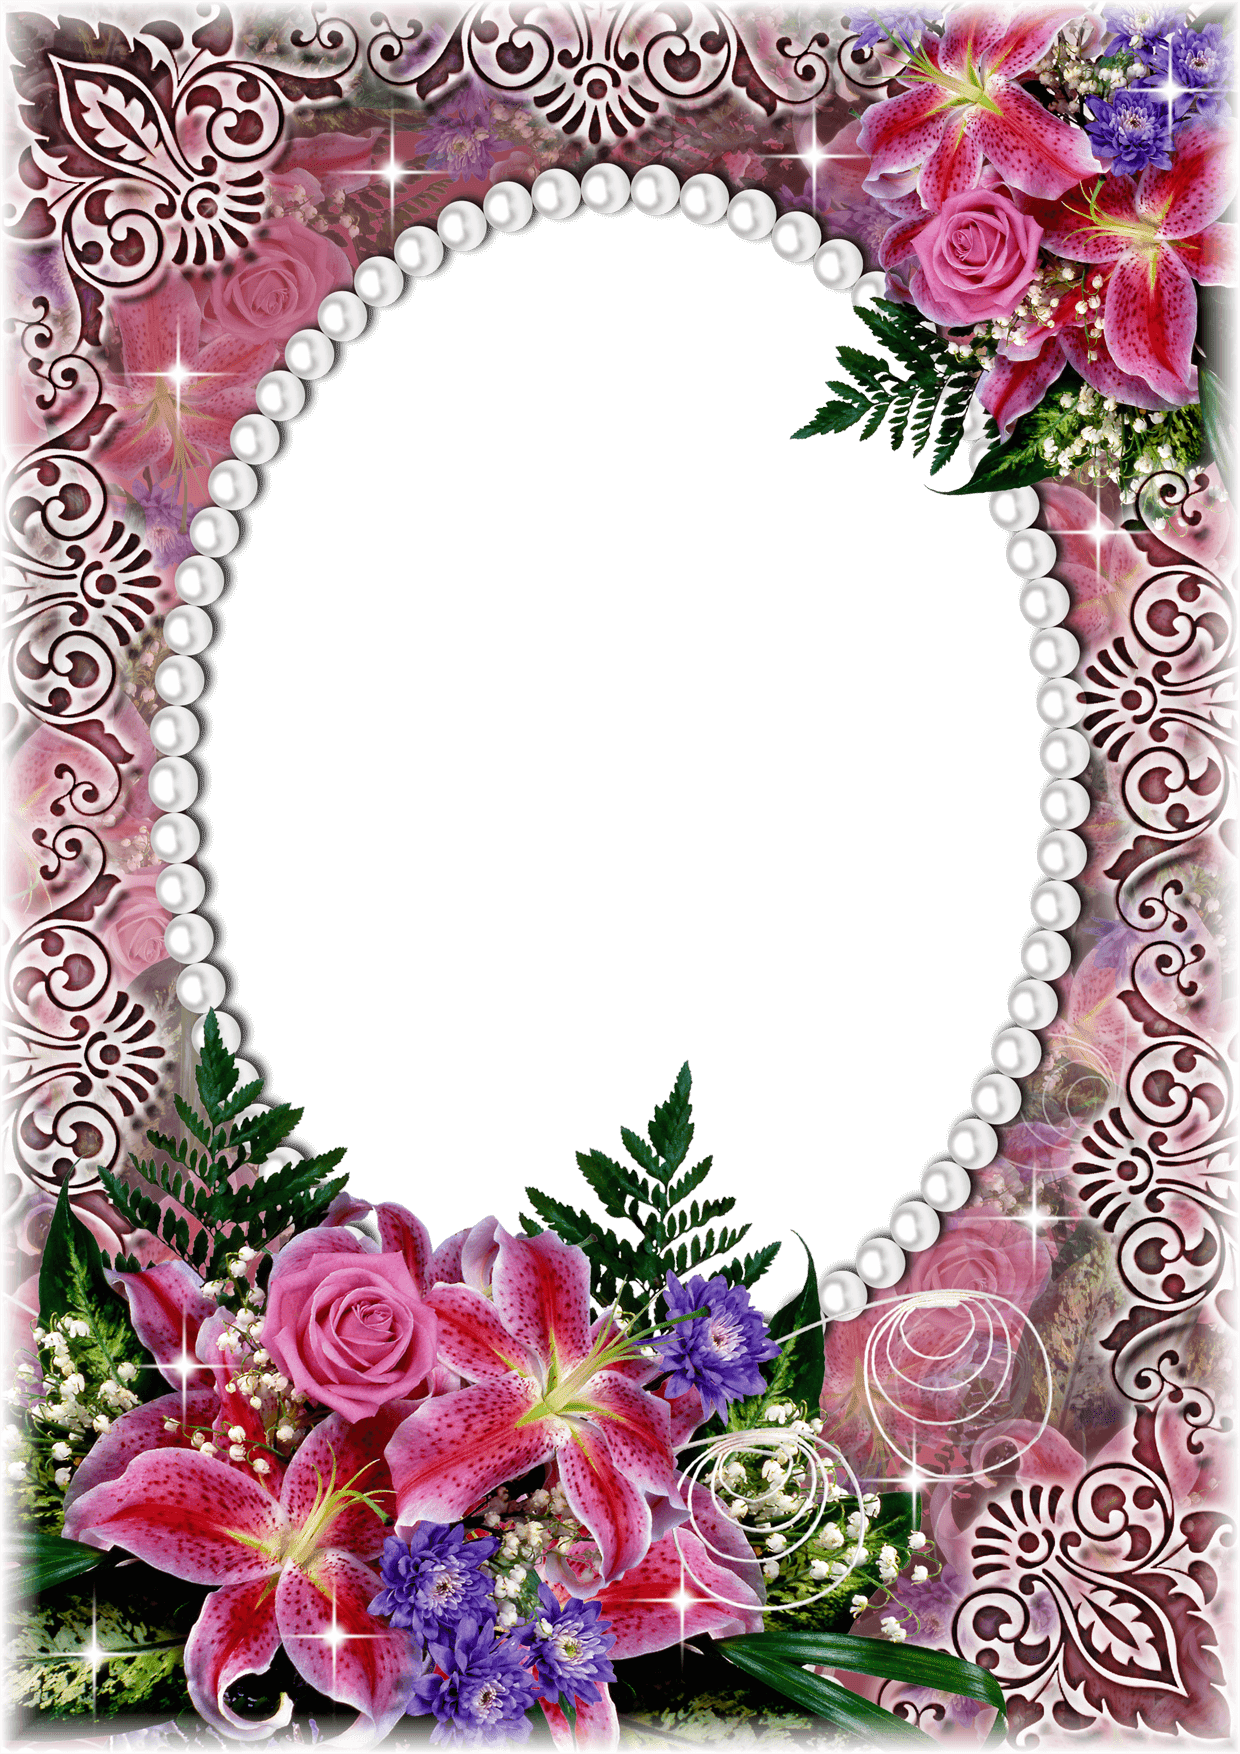 Picture Frame, Decor Picture Frame Transparent Image and